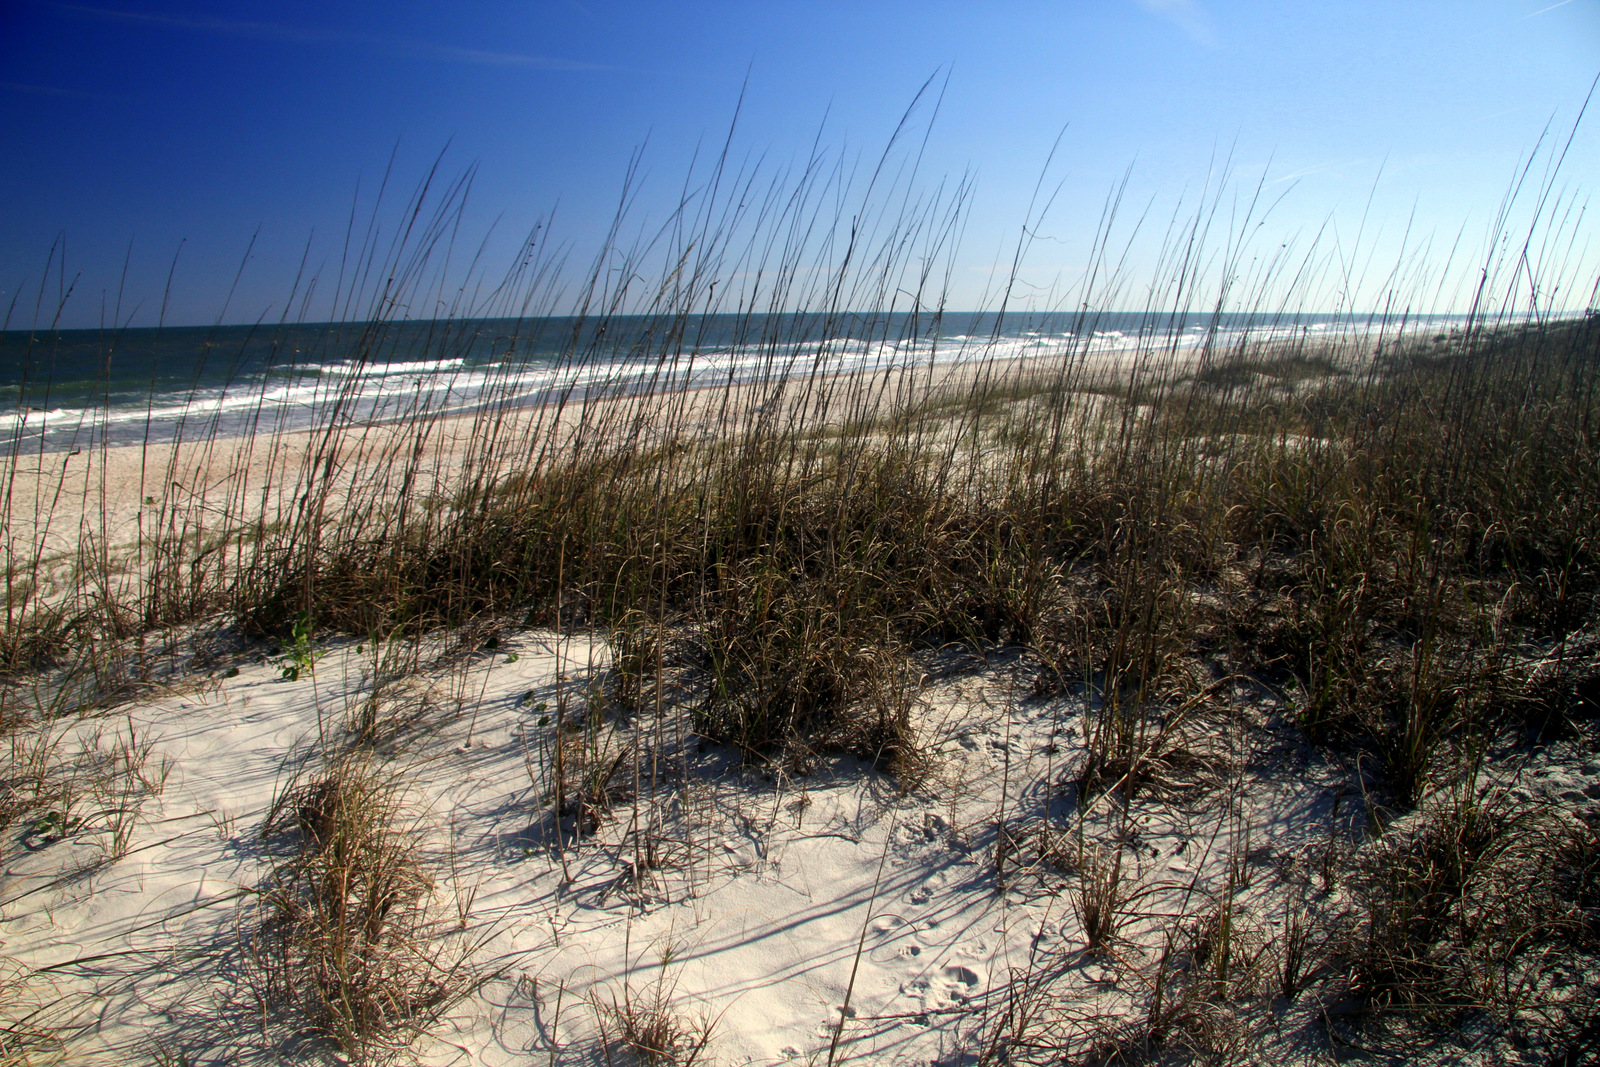 A Few More Things That Make Amelia Island An Attractive Place To Live & Visit